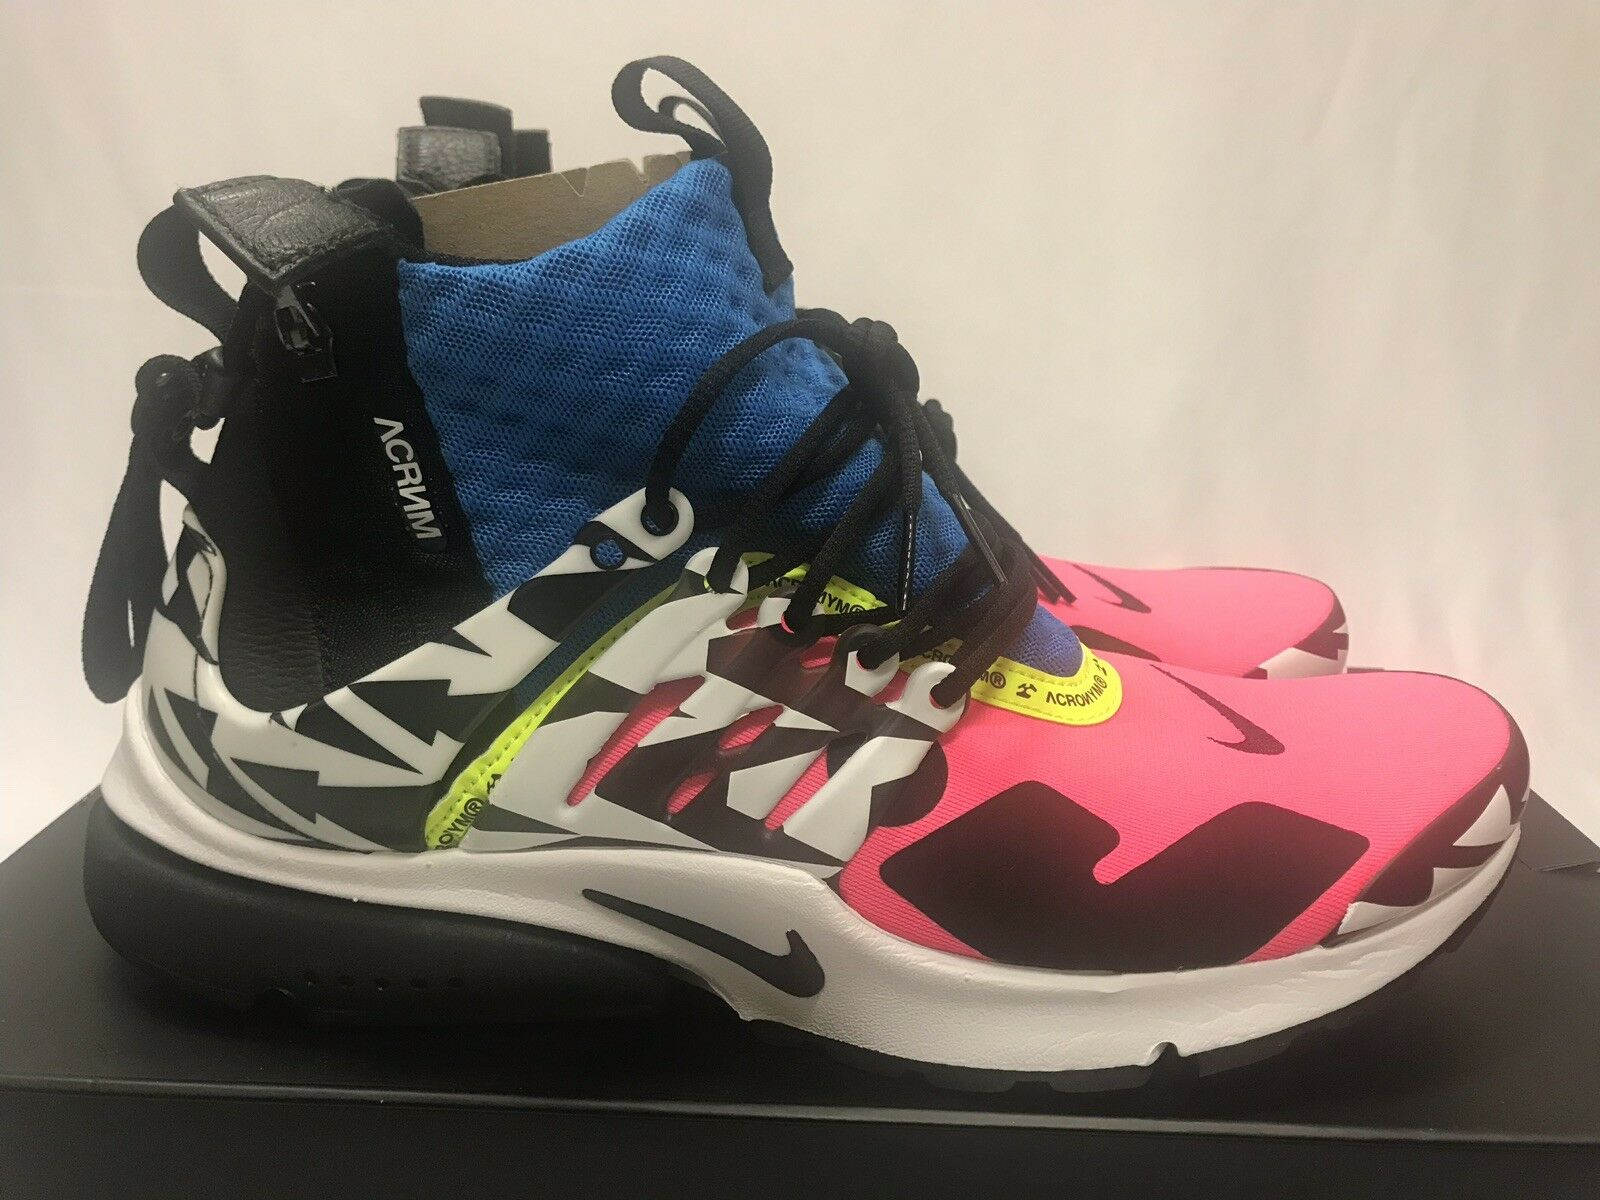 Air Presto Mid Acronym Racer Pink Size 9 Black Photo bluee White AH7832-600